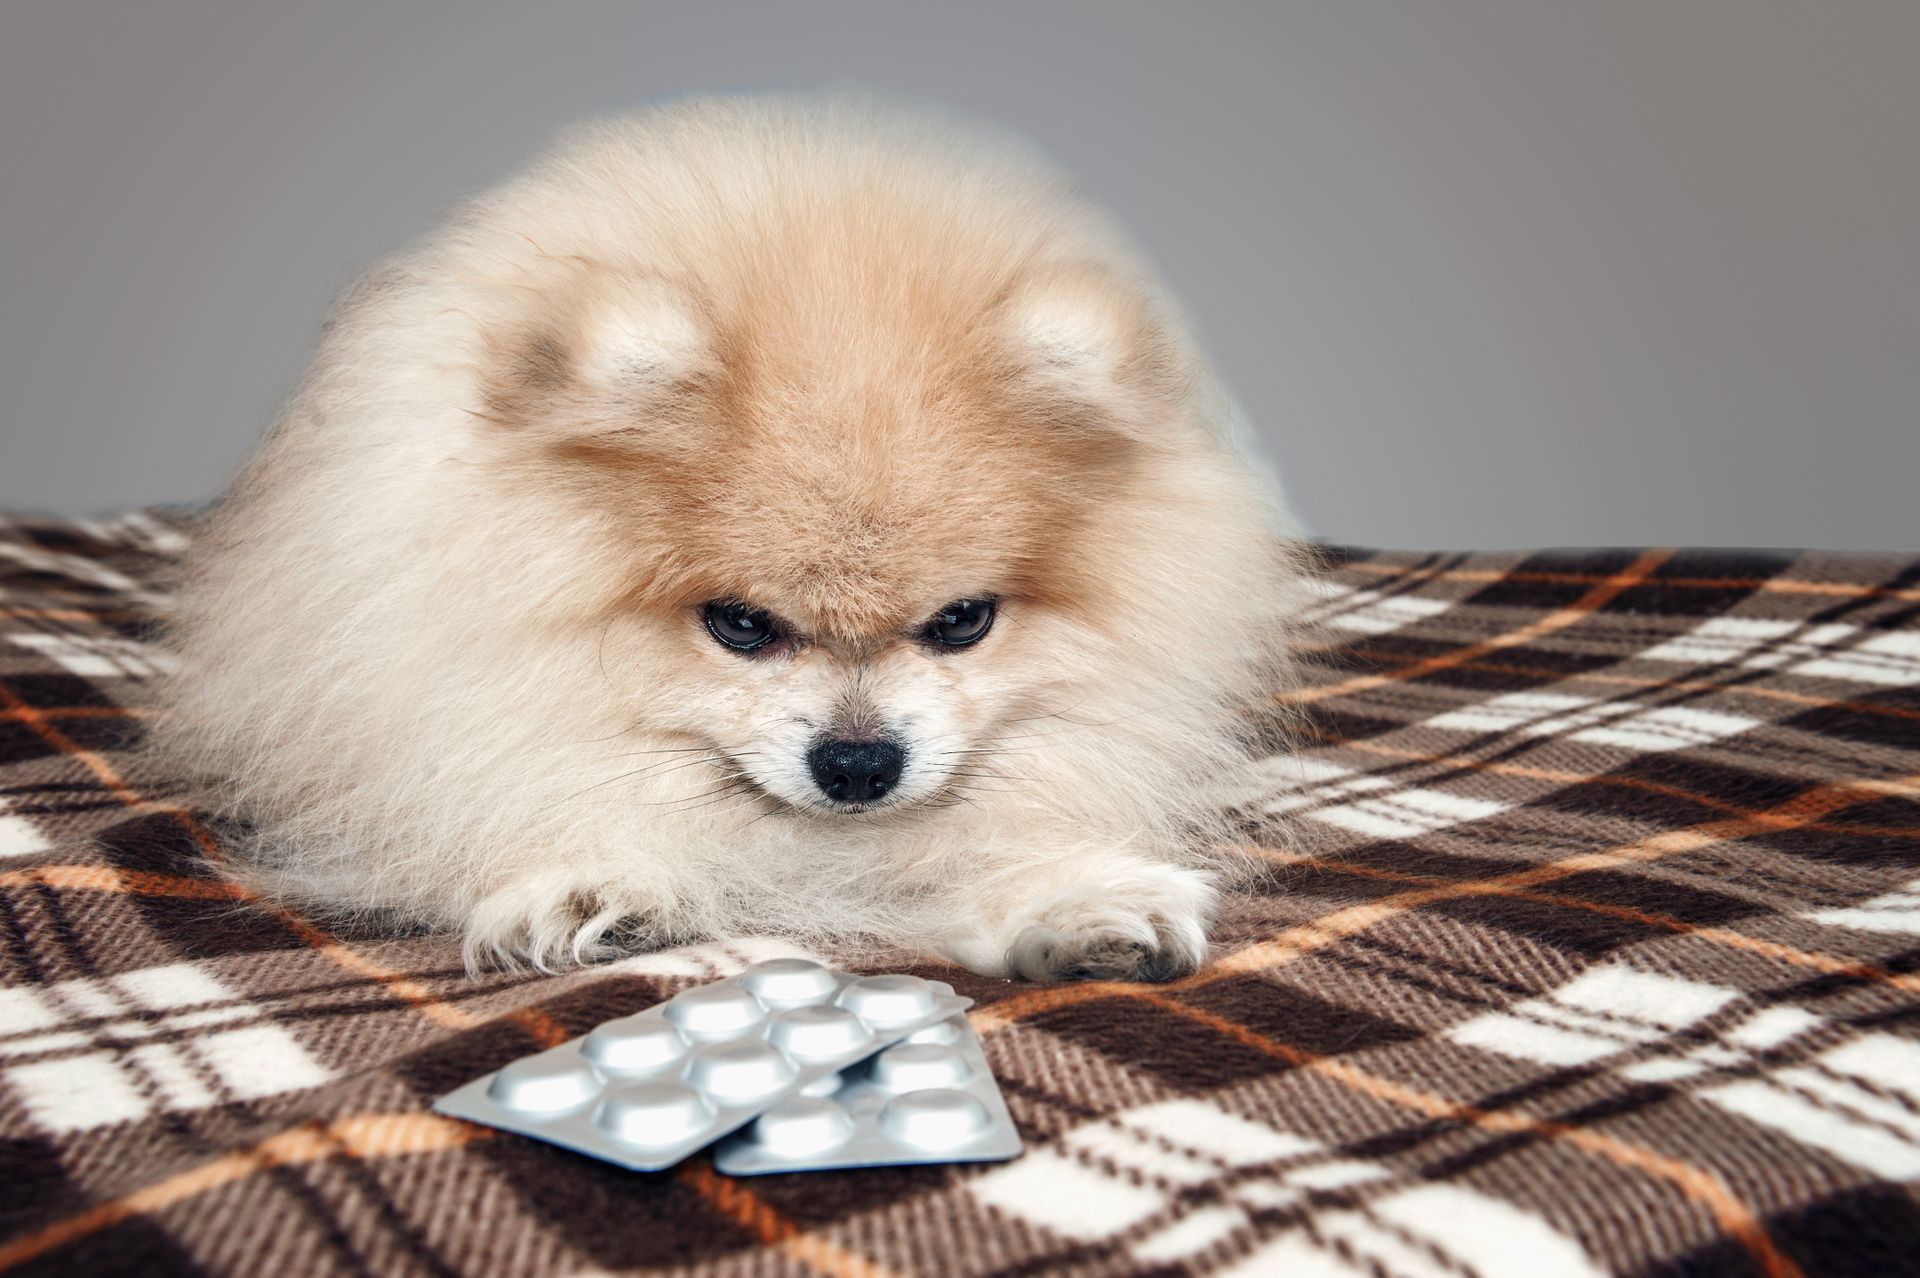 medroxyprogesterone for dogs and cats